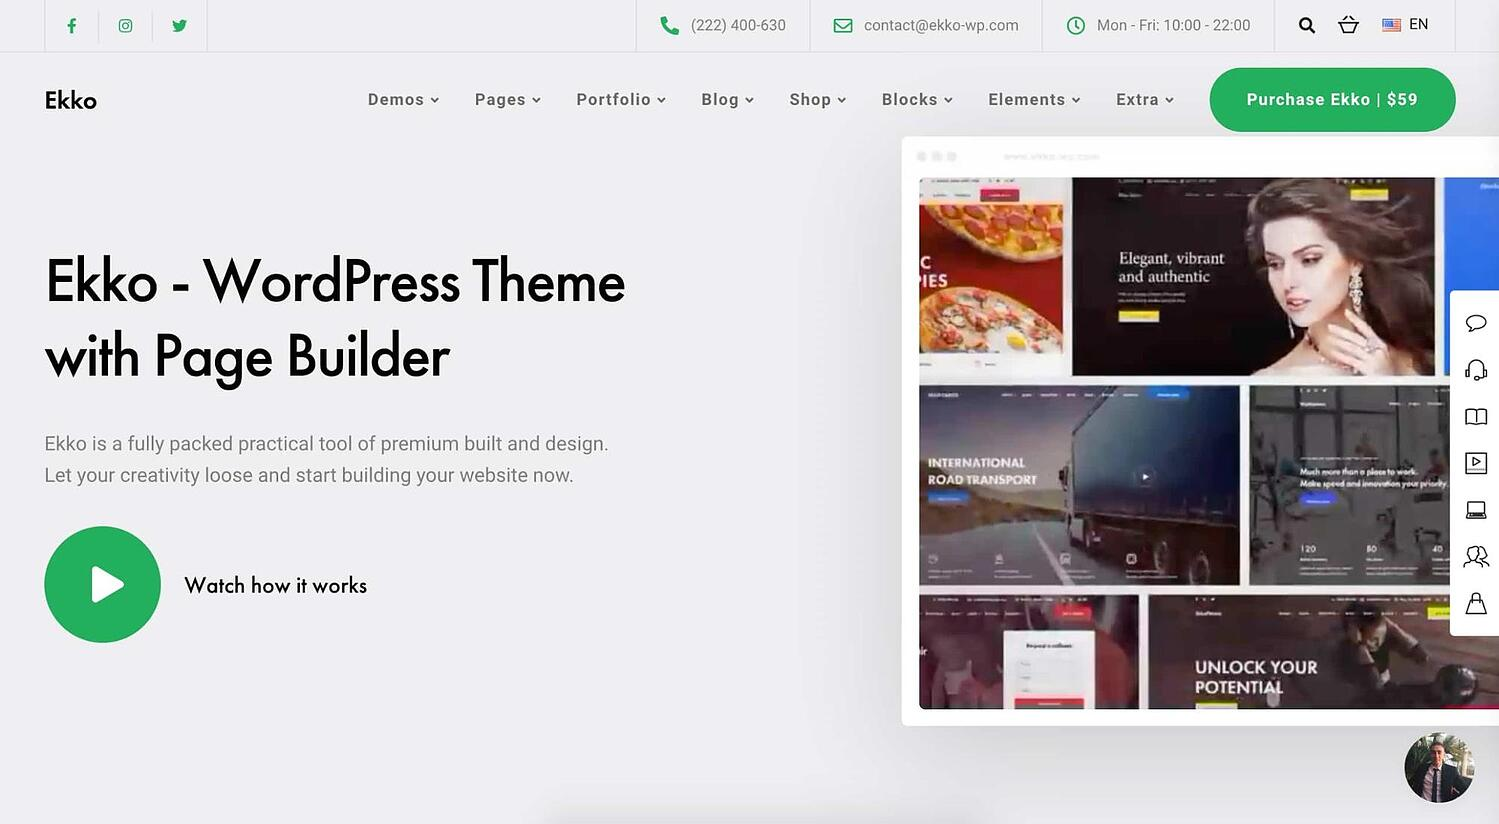 Ekko one page WordPress theme